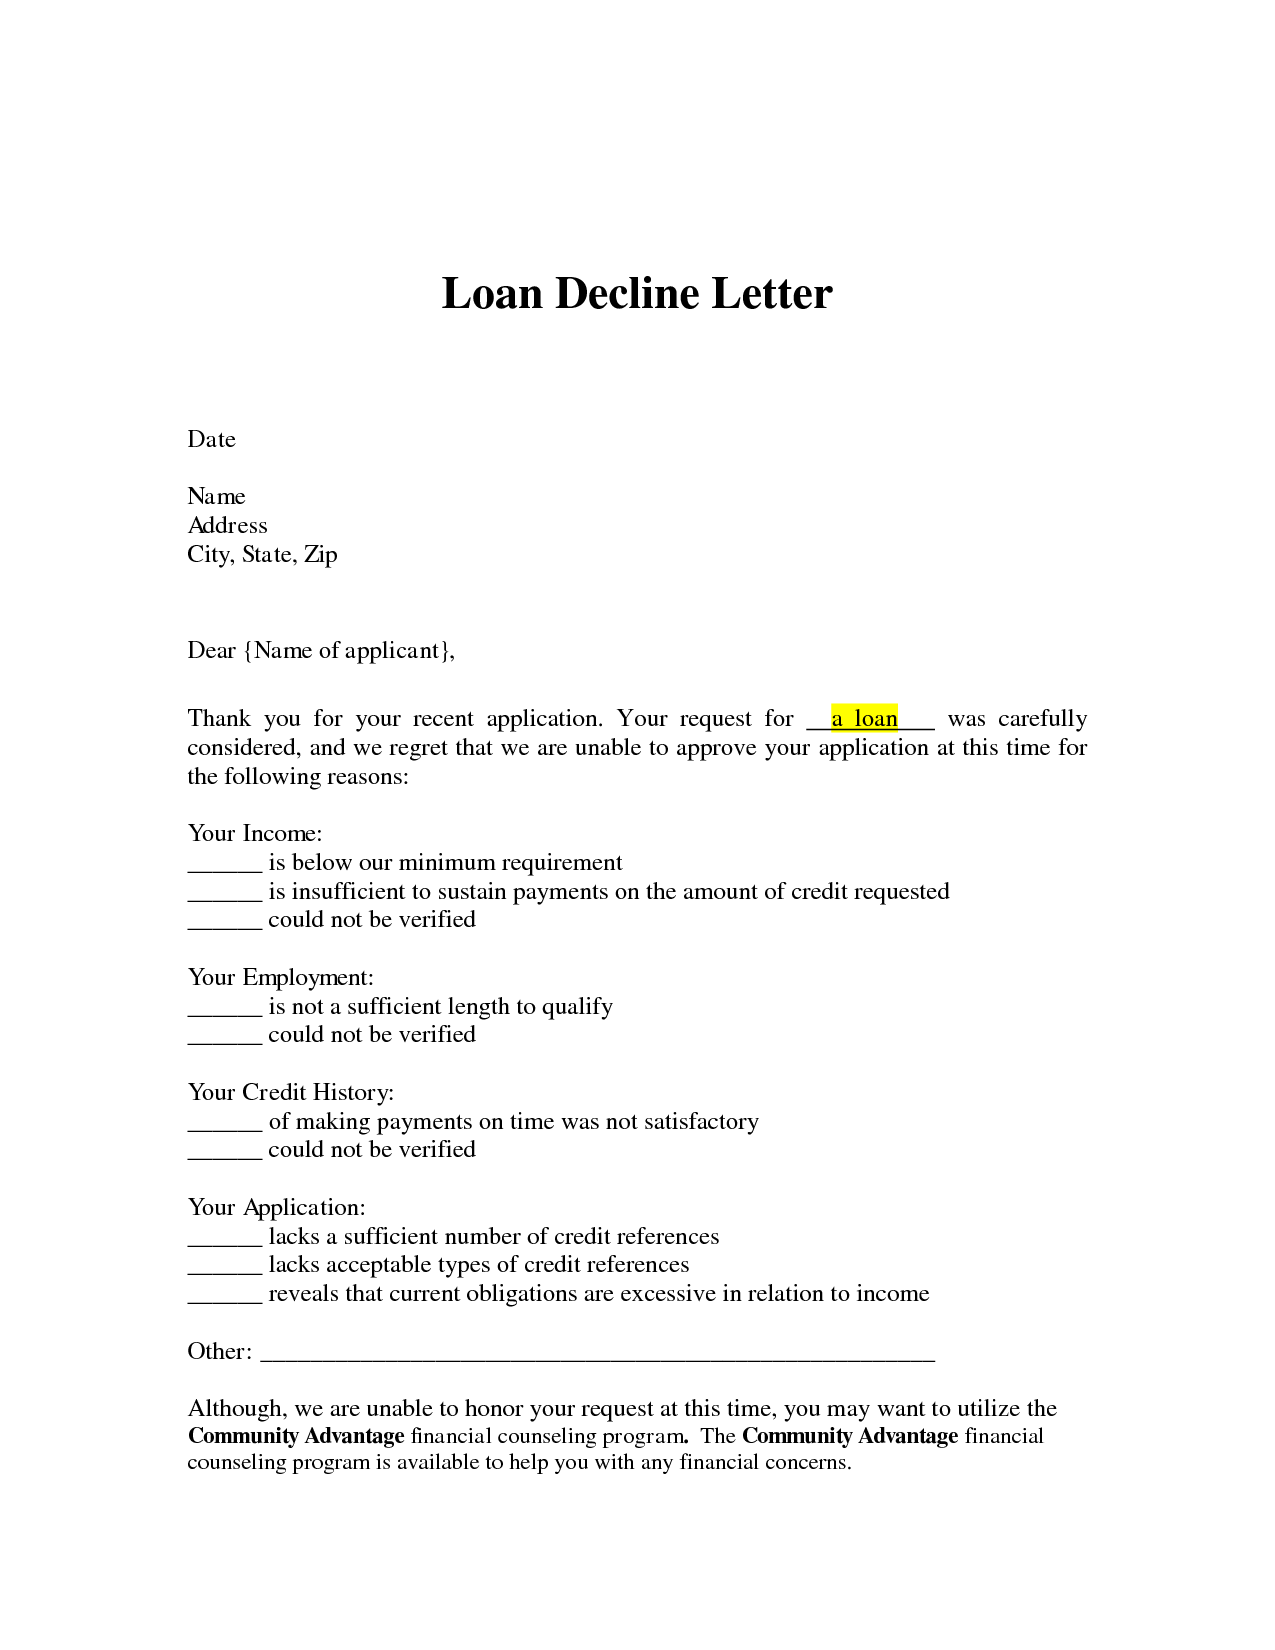 Person To Person Loan Contract Free Printable Personal Loan Agreement  Printable Agreements, 5 Loan Agreement Templates To Write Perfect Agreements,  ...  Person To Person Loan Contract